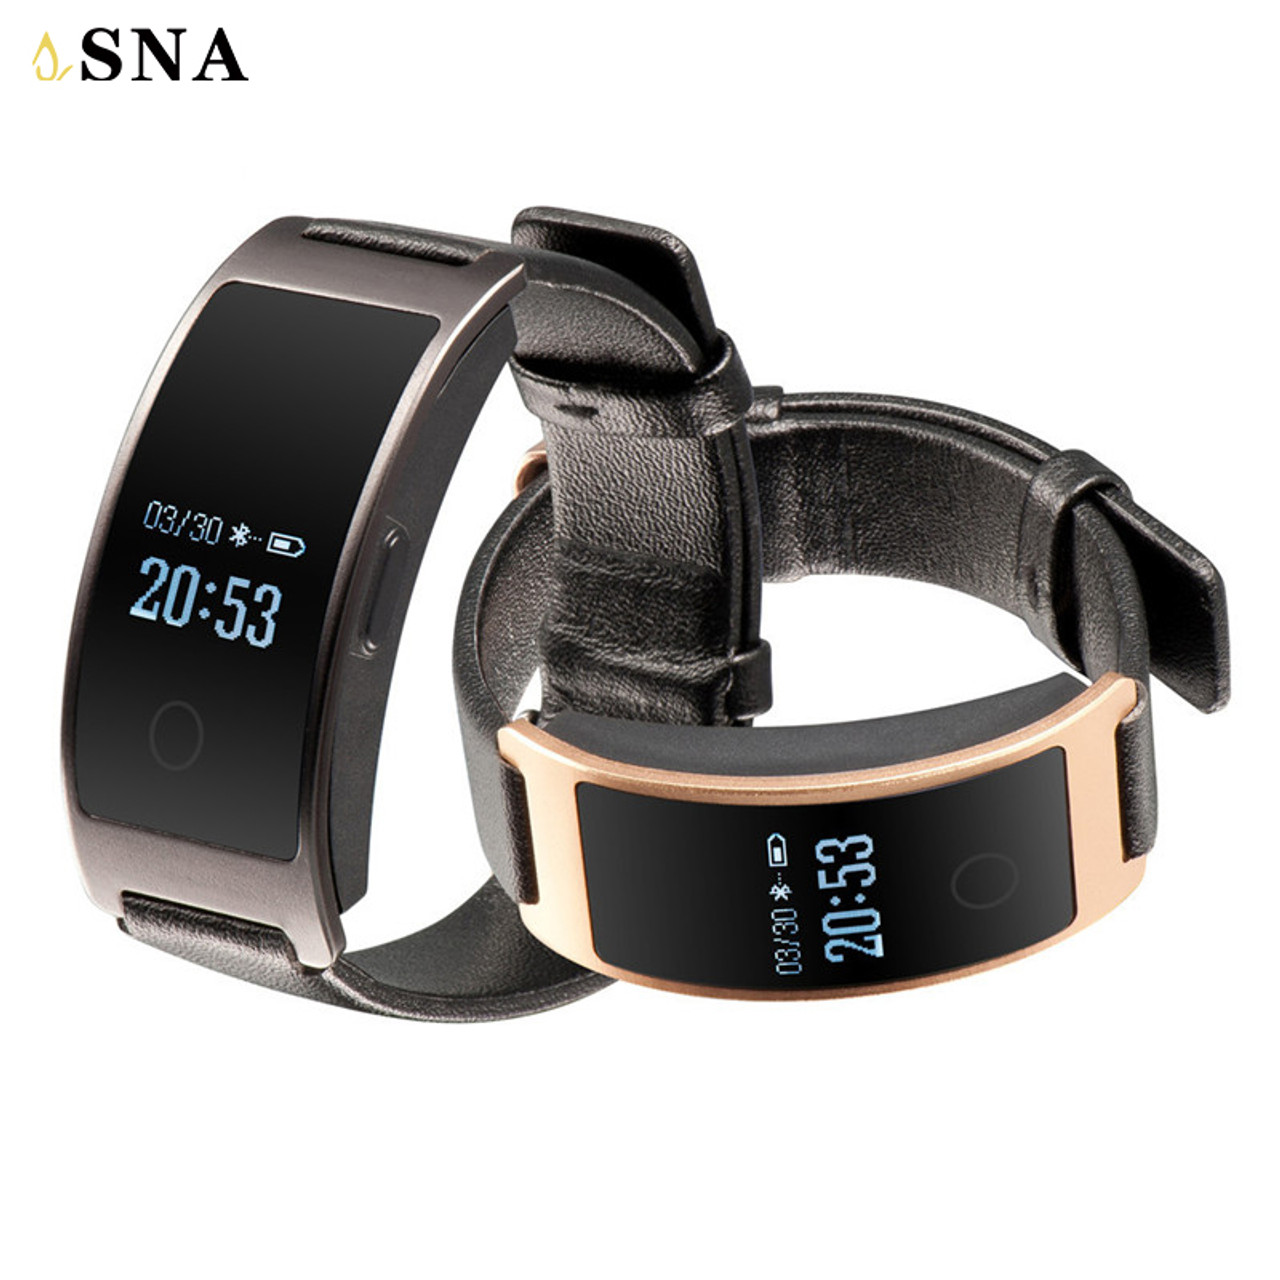 products sports wristband tracker heart h monitor activity smart watch rate fitness watches waterproof min band bracelet alangduo